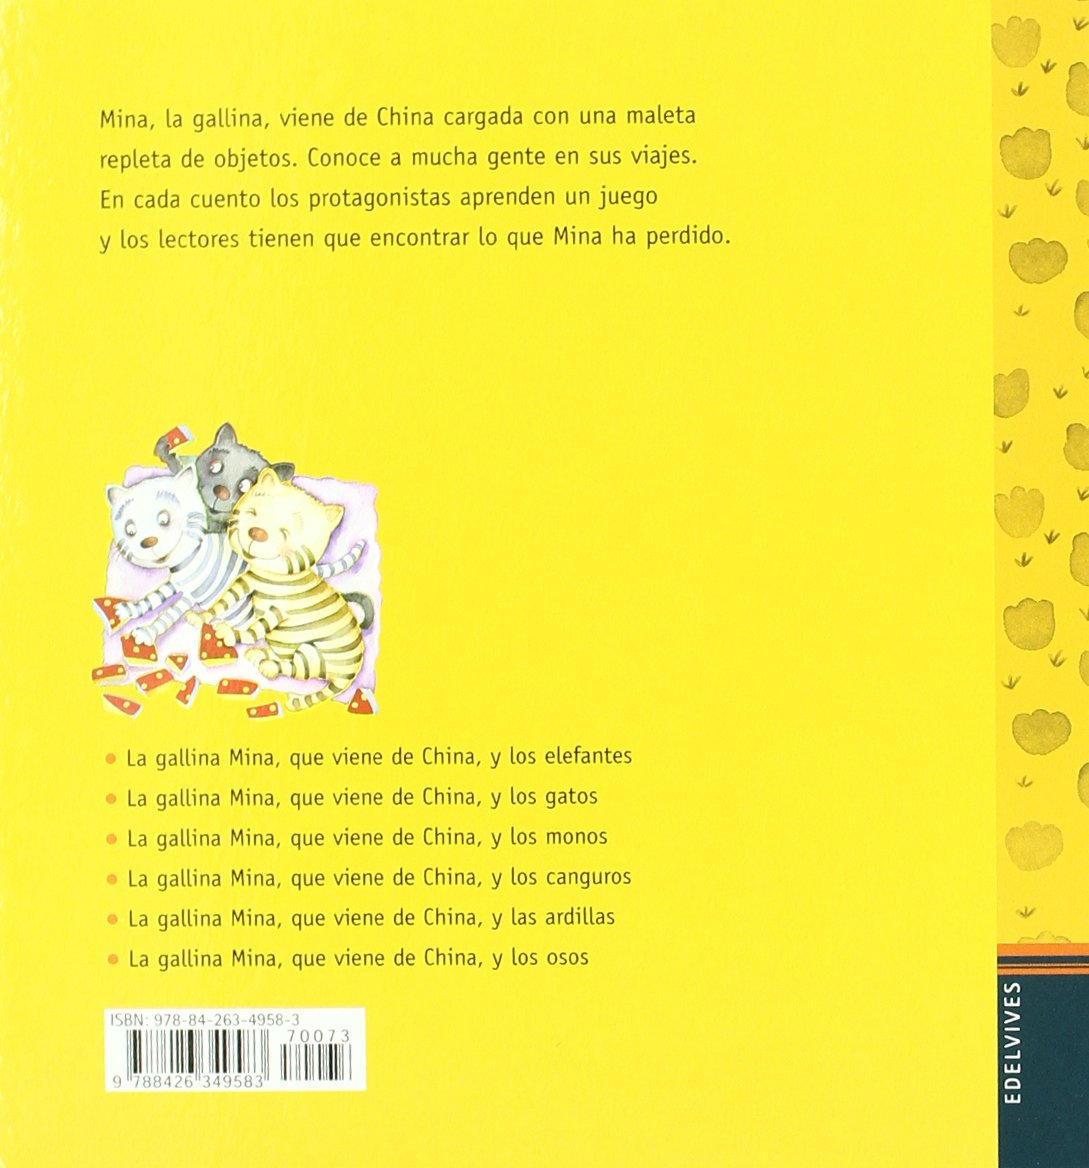 La gallina Mina que viene de China y los gatos: Mercè Arànega: 9788426349583: Amazon.com: Books